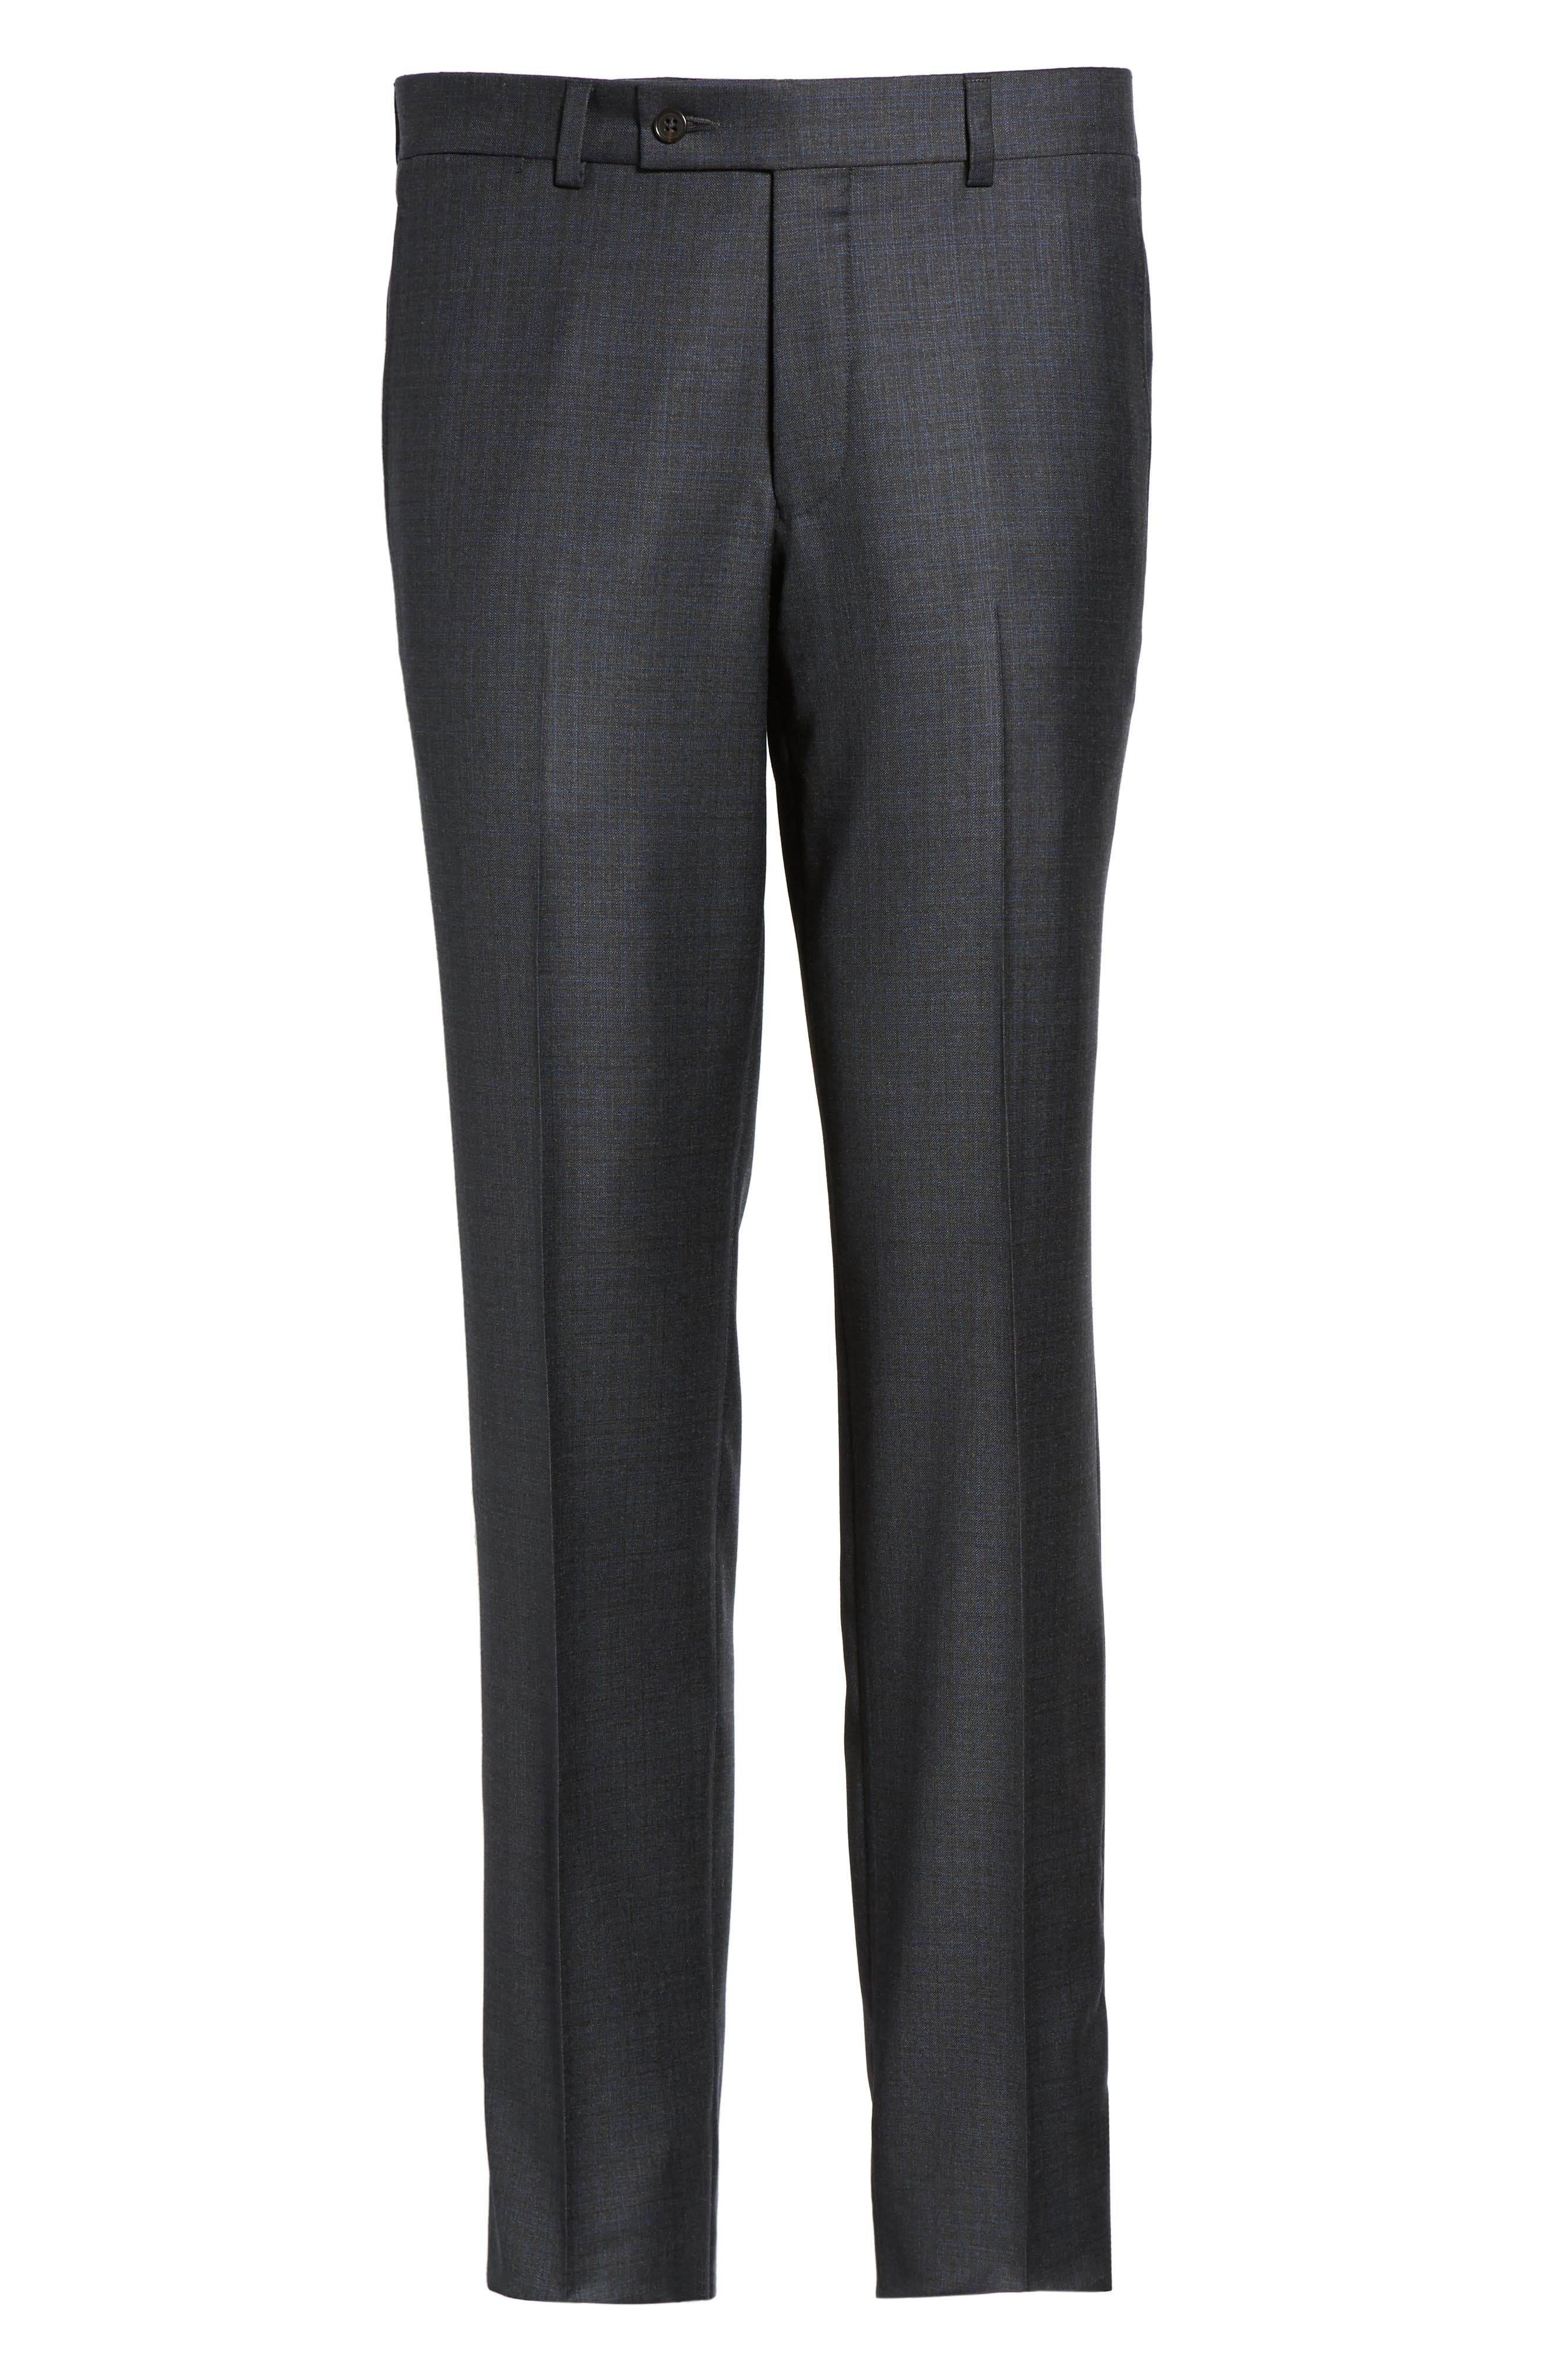 Jefferson Flat Front Solid Wool Trousers,                             Alternate thumbnail 6, color,                             020